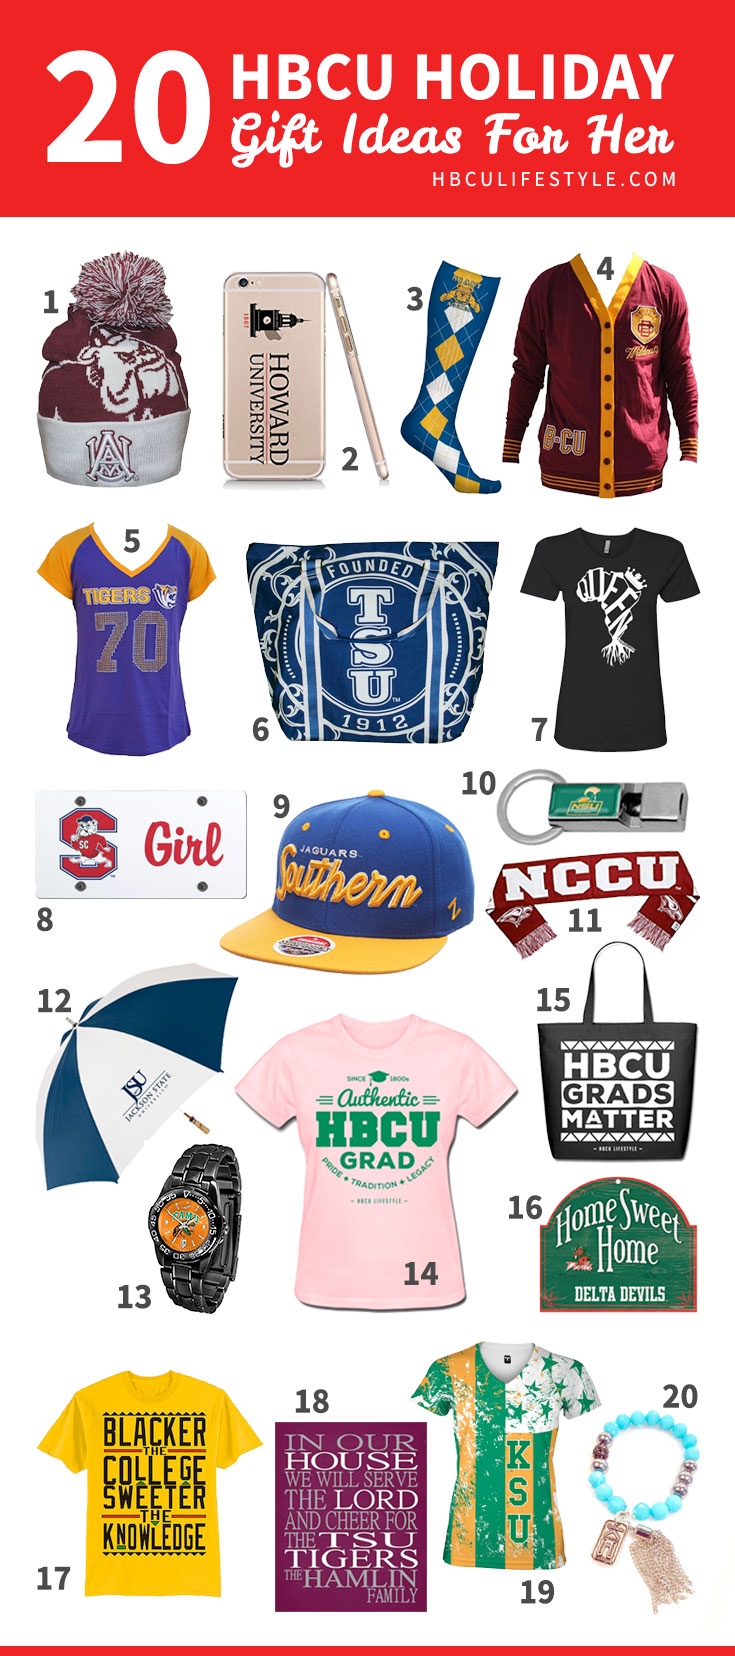 Gifts for her: A collection of holiday products and gift ideas for female HBCU supporters.